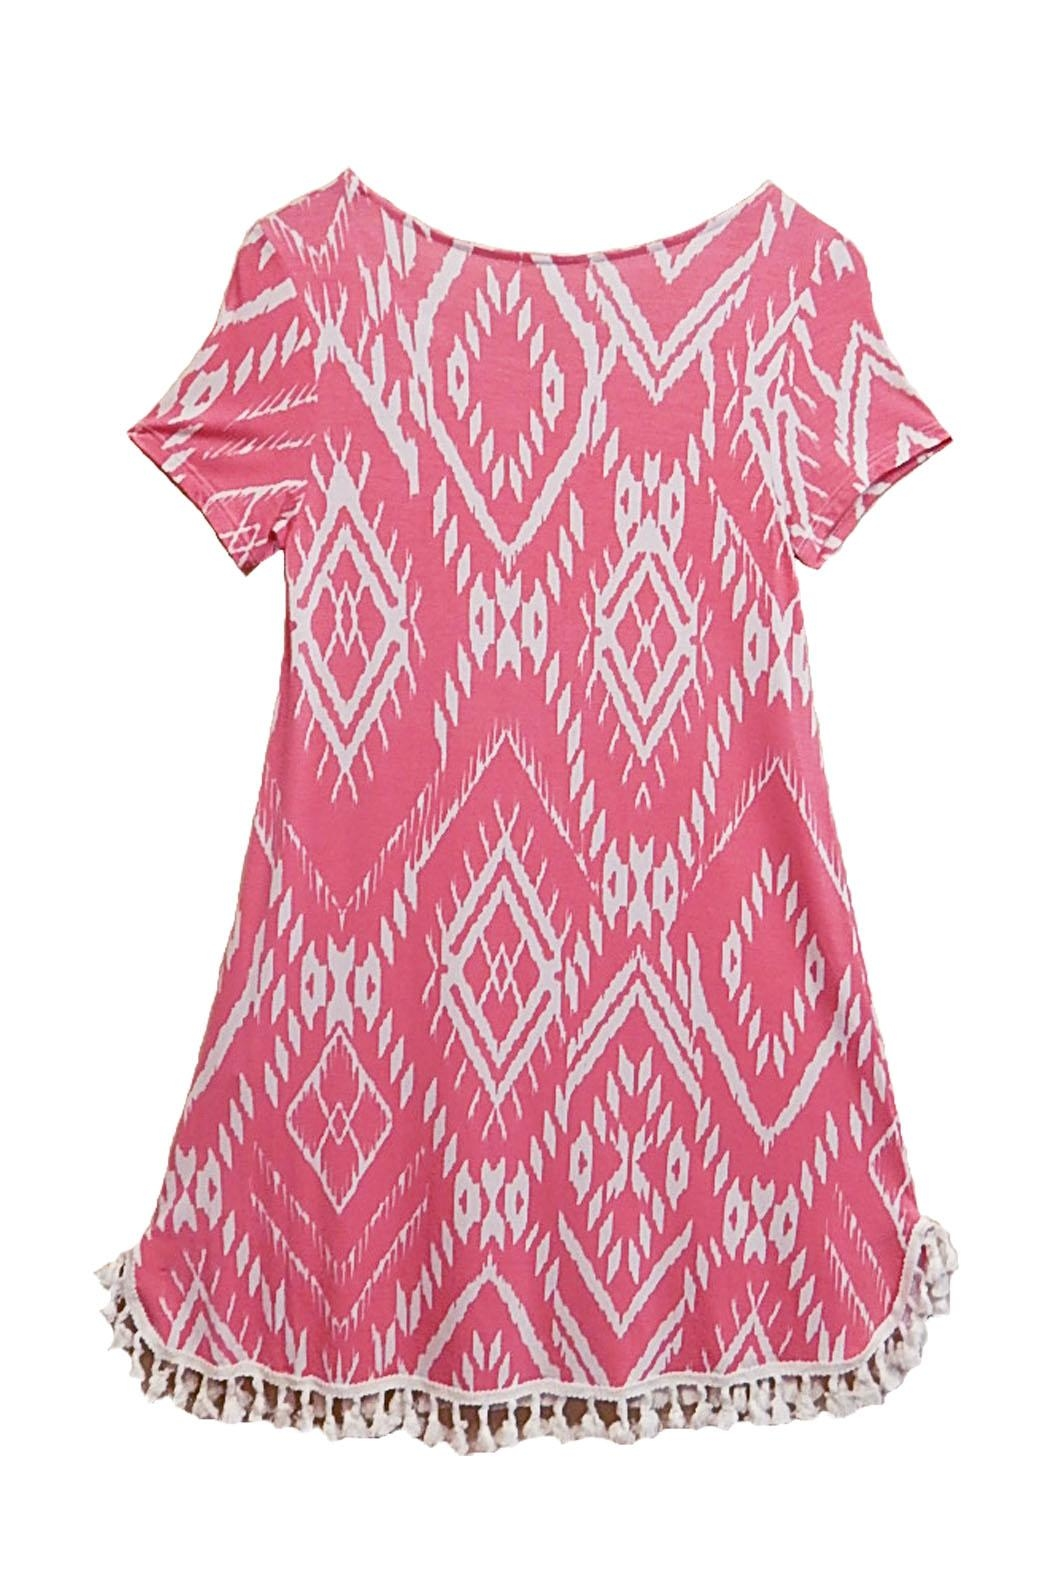 12pm by Mon Ami Pink Tassel Dress - Front Full Image